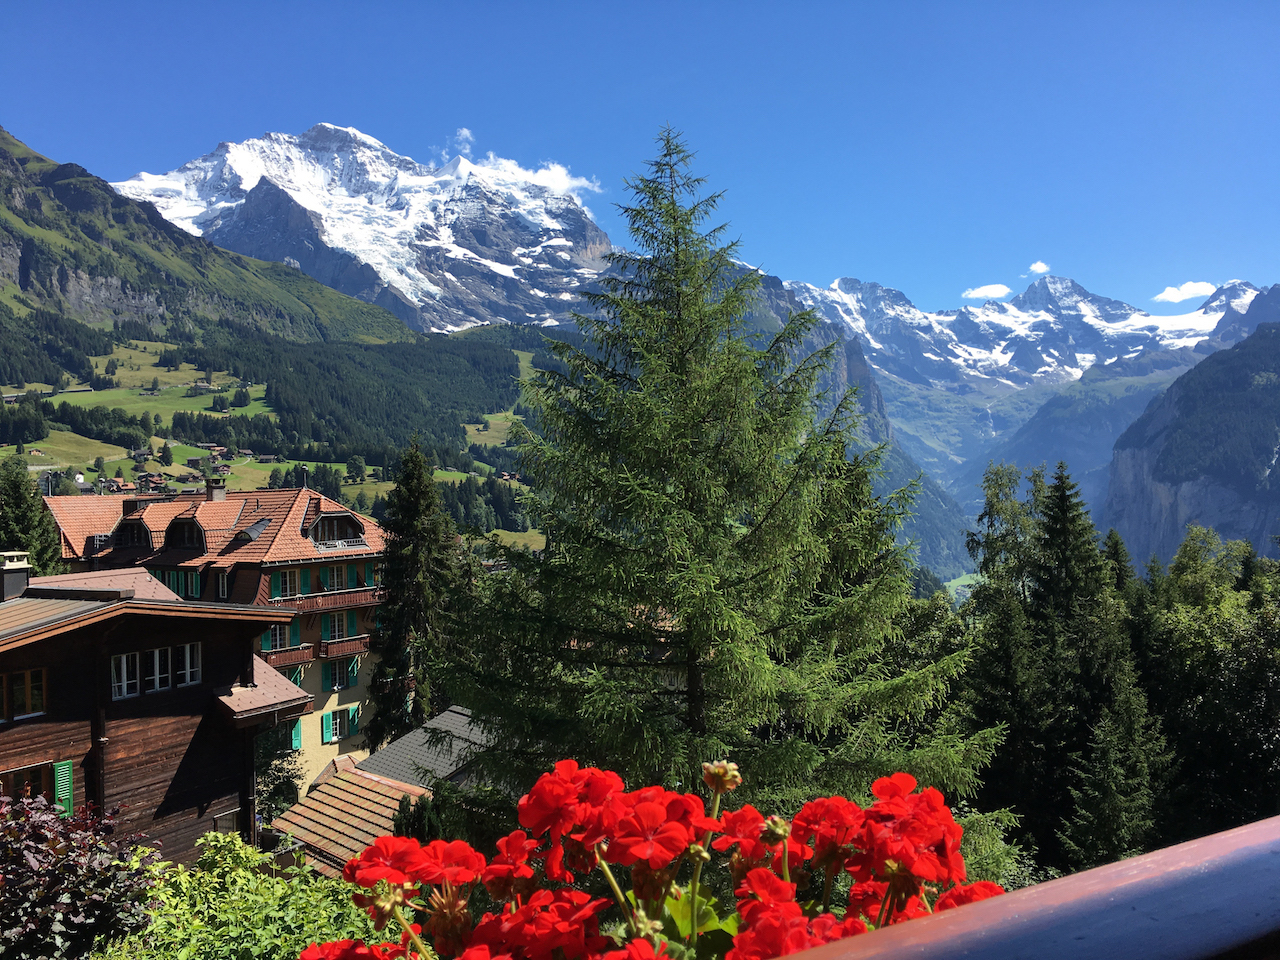 hotel-view-from-alpenruhe-copy